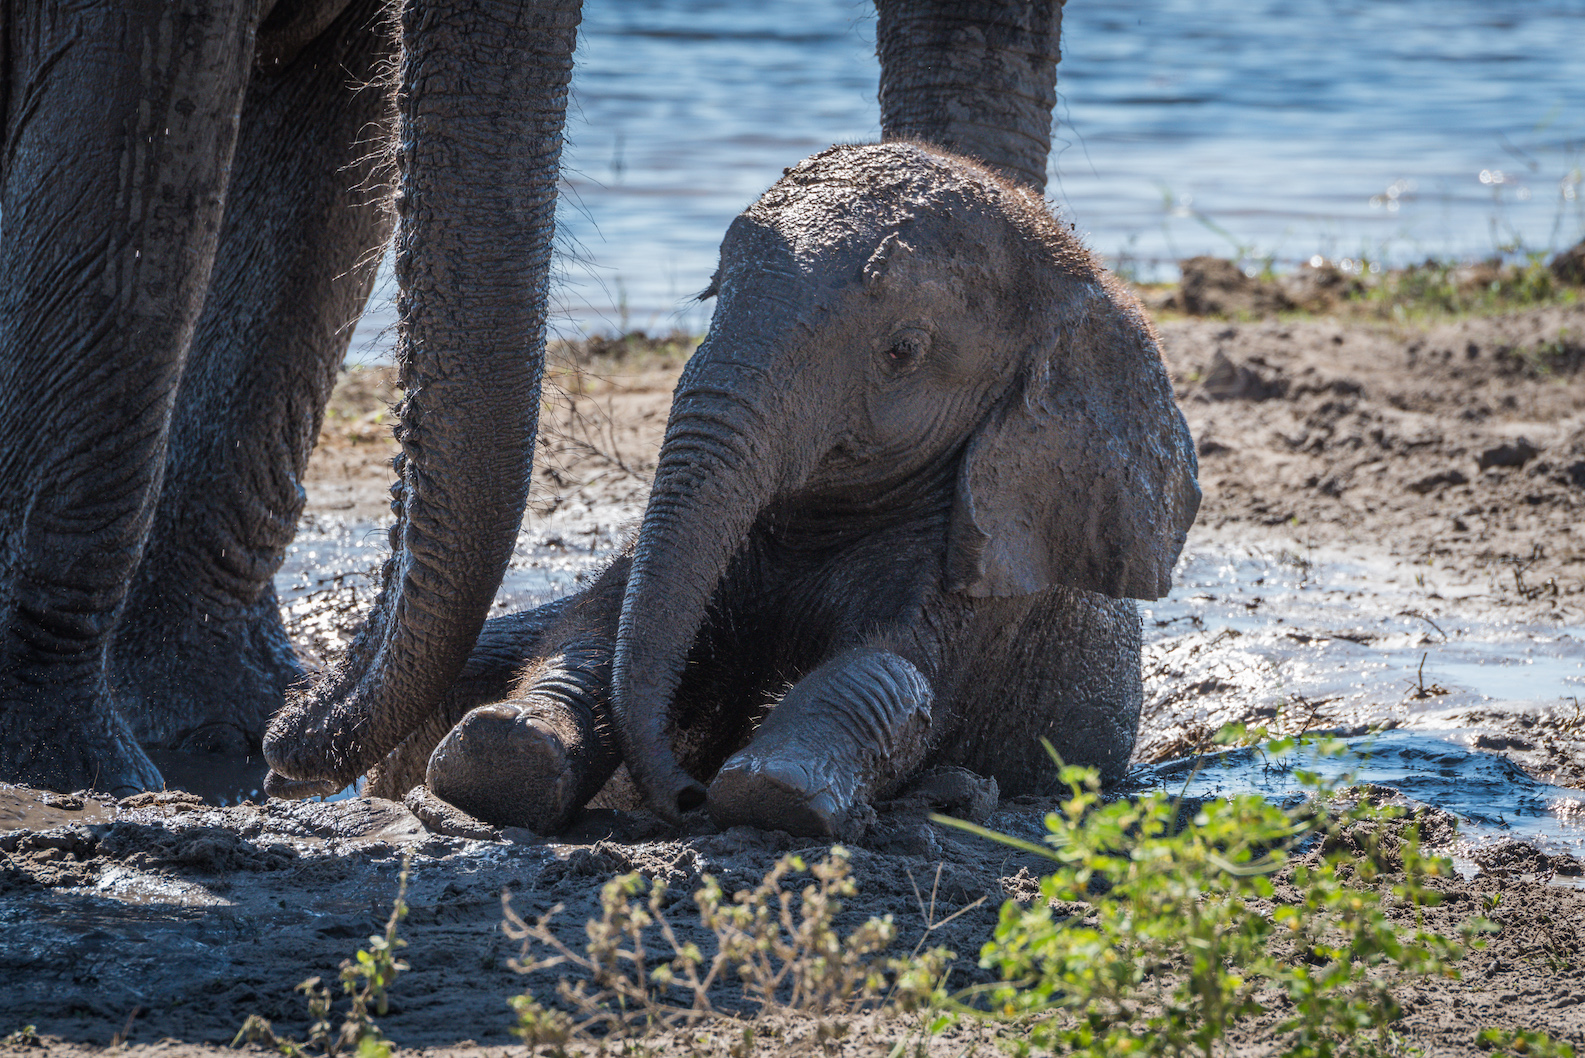 Baby elephant sitting in mud beside mother